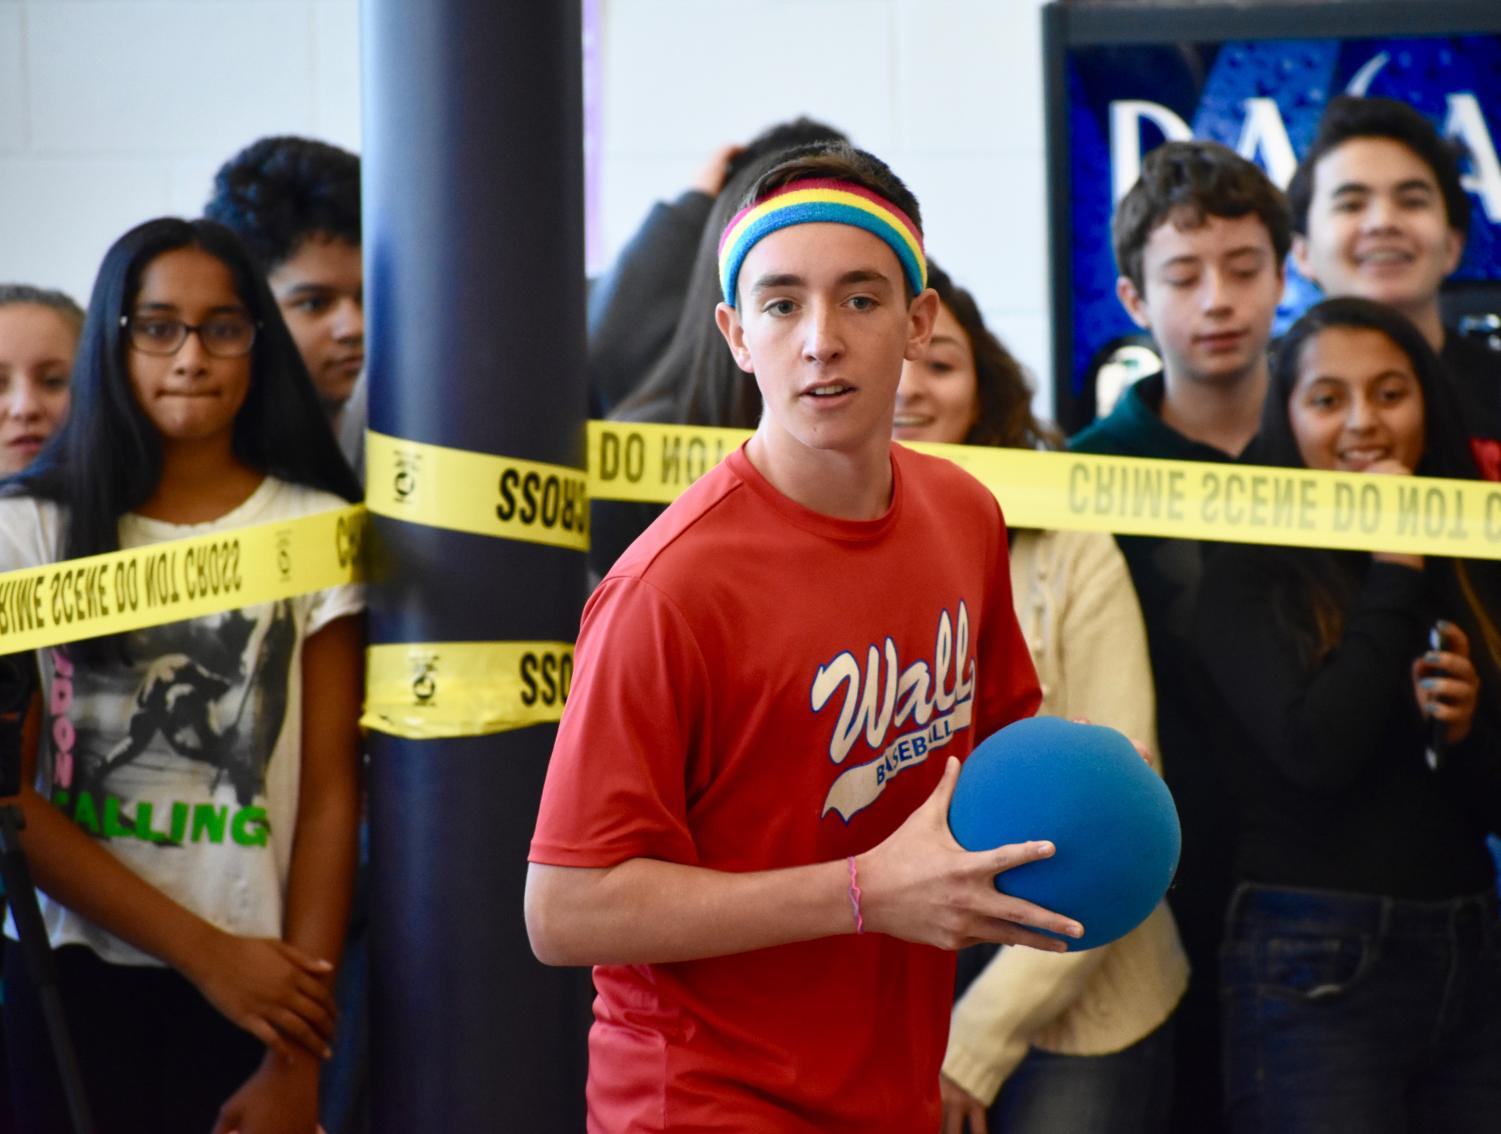 Sophomore+Ethan+Hecht+of+Wall+prepares+to+throw+his+ball.+The+Class+of+2021+placed+second+in+the+event.